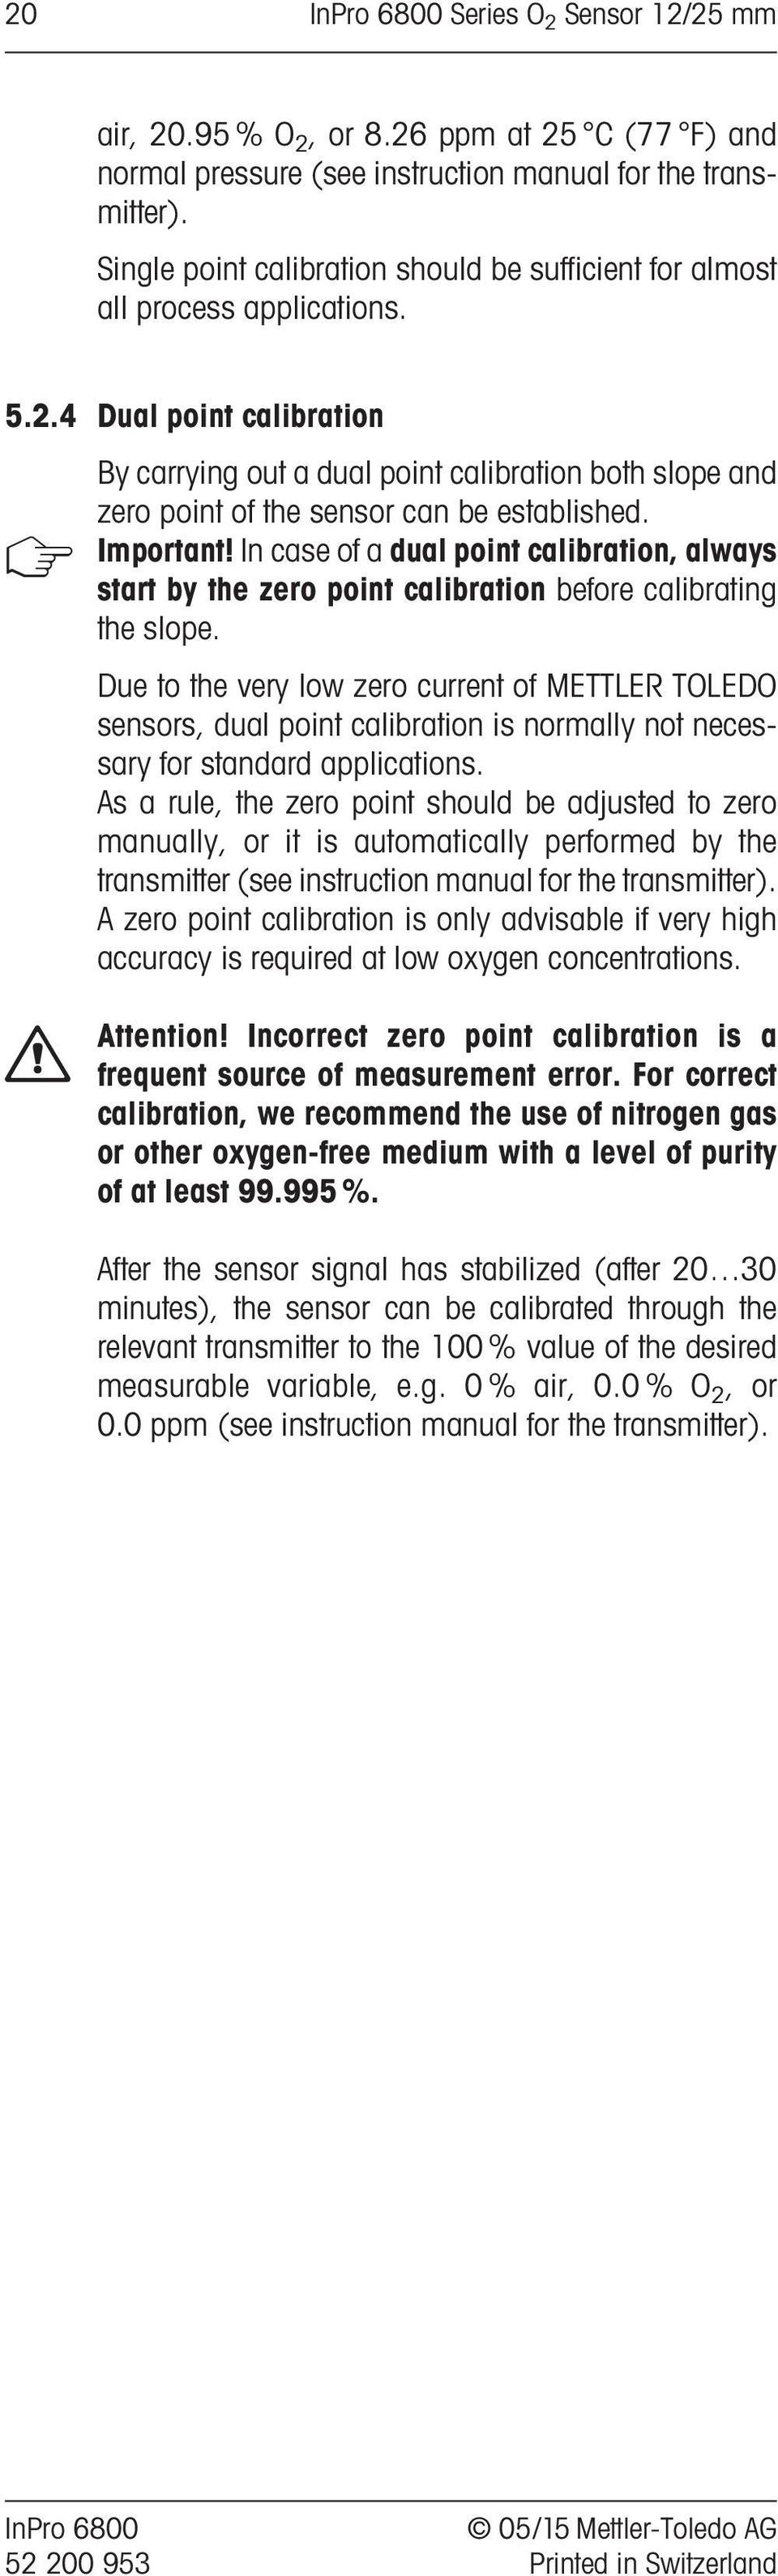 4 Dual point calibration By carrying out a dual point calibration both slope and zero point of the sensor can be established. Important!